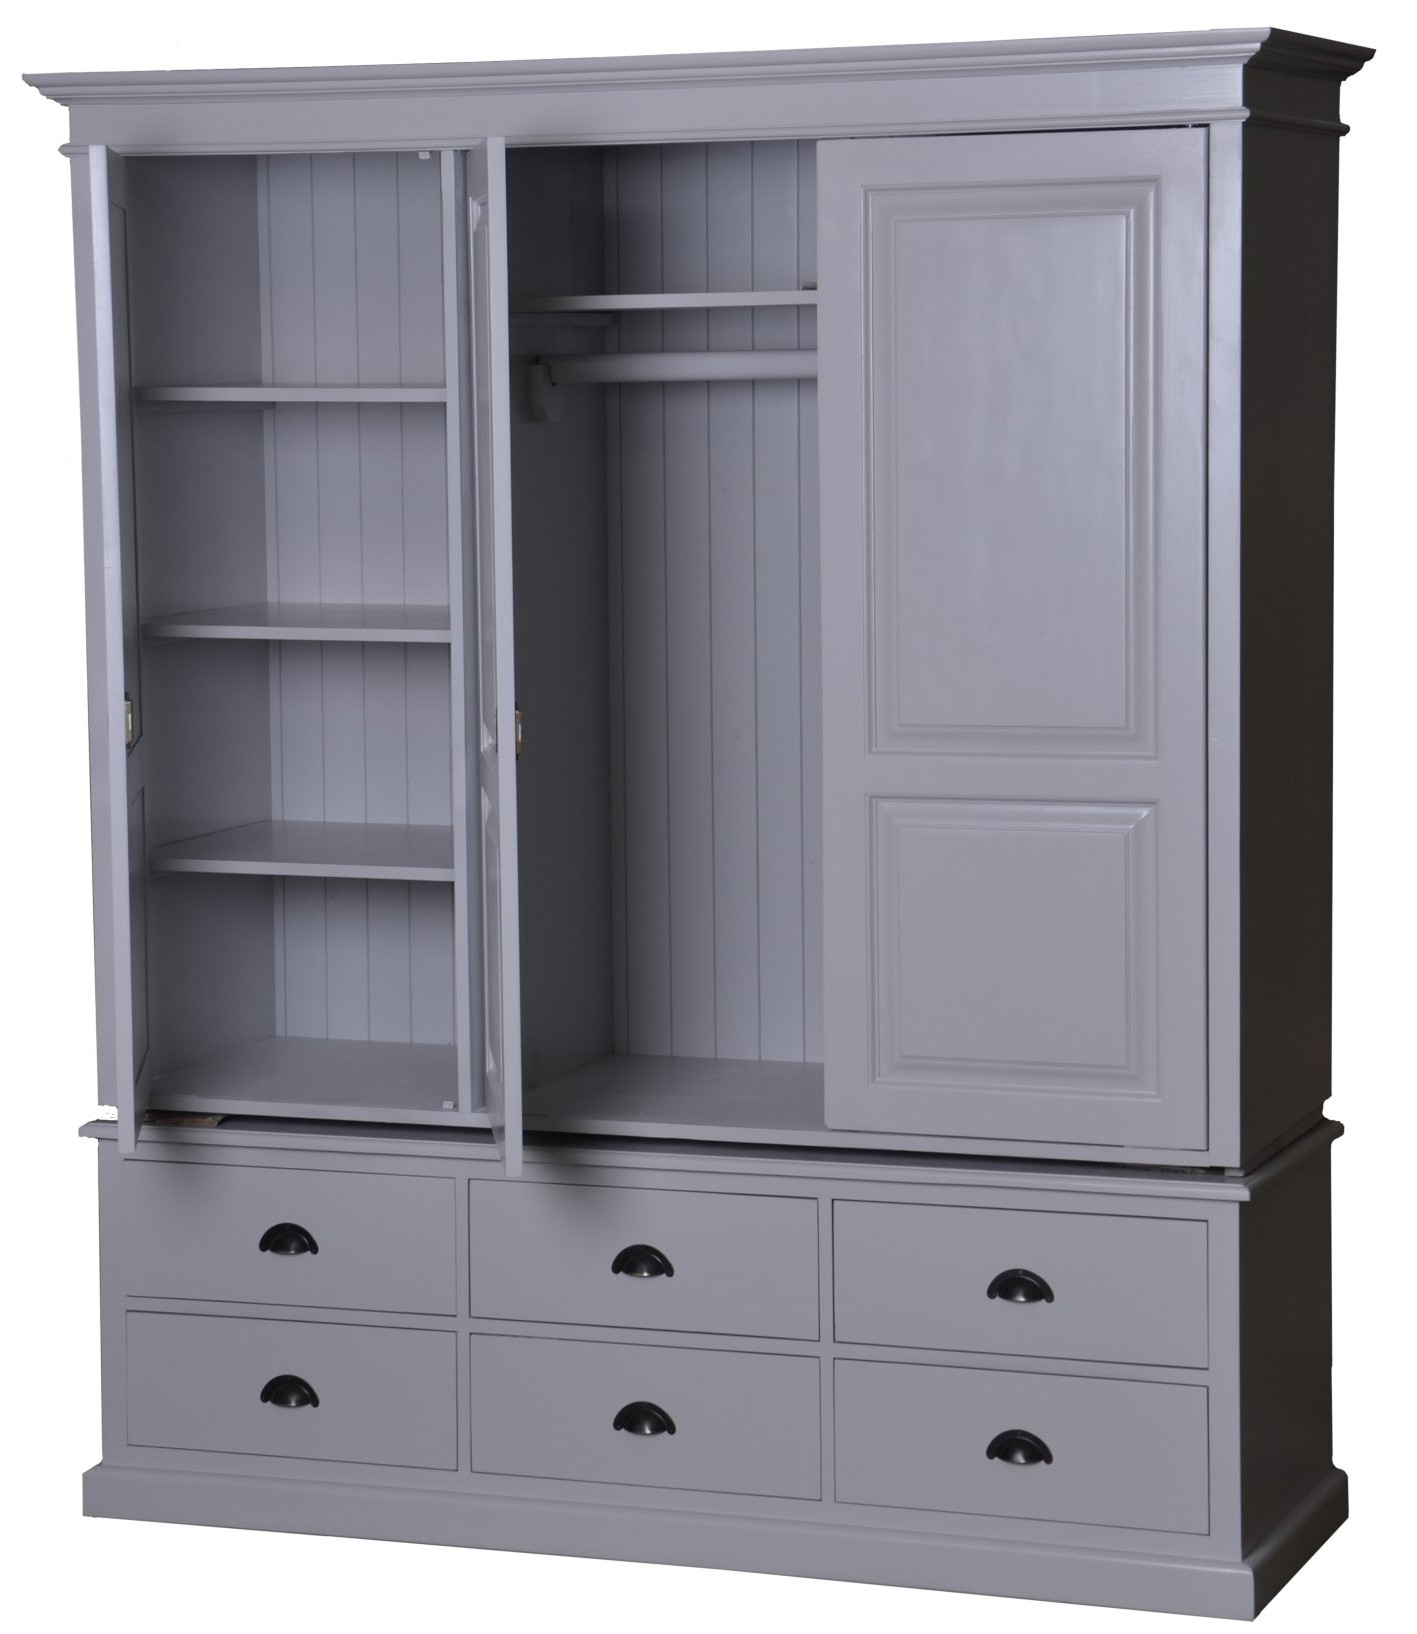 armoire penderie pin brut armoire id es de d coration. Black Bedroom Furniture Sets. Home Design Ideas